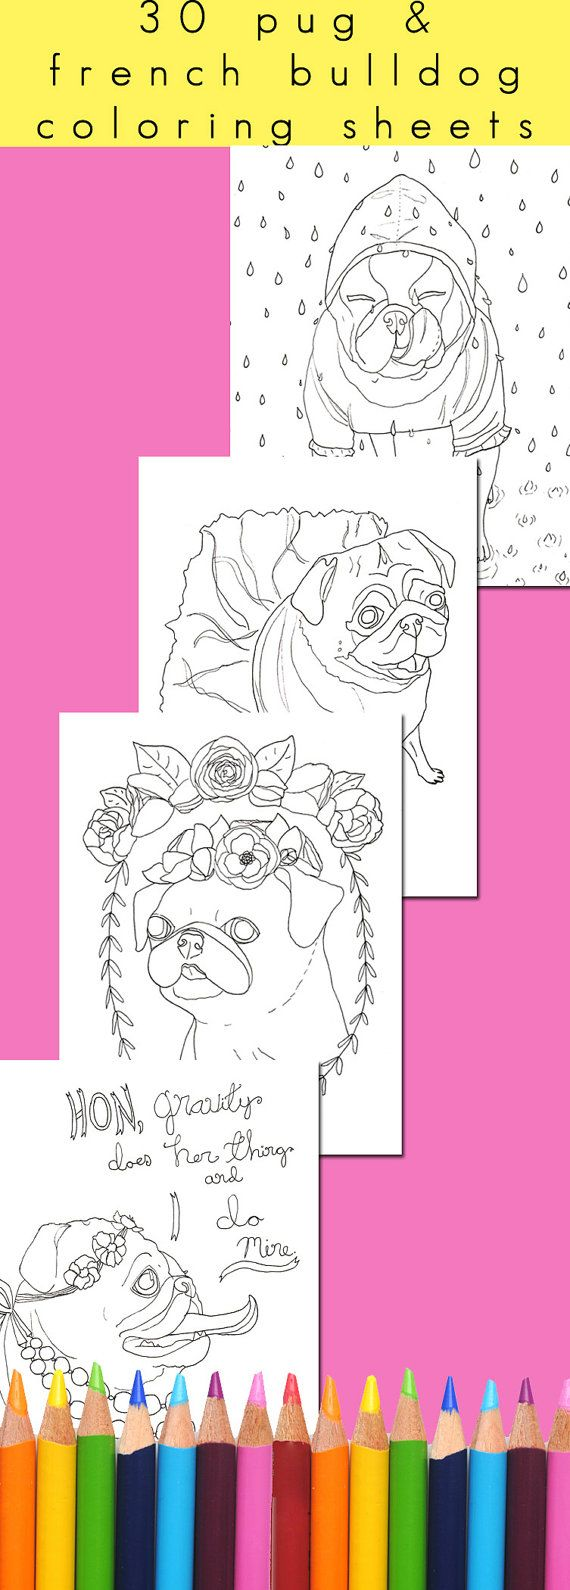 Free printable coloring pages pugs - Pug French Bulldog Adult Coloring Book Coloring Book For Adults Dog Lover Gift Coloring Page Coloring Book For Kids Coloring Sheet